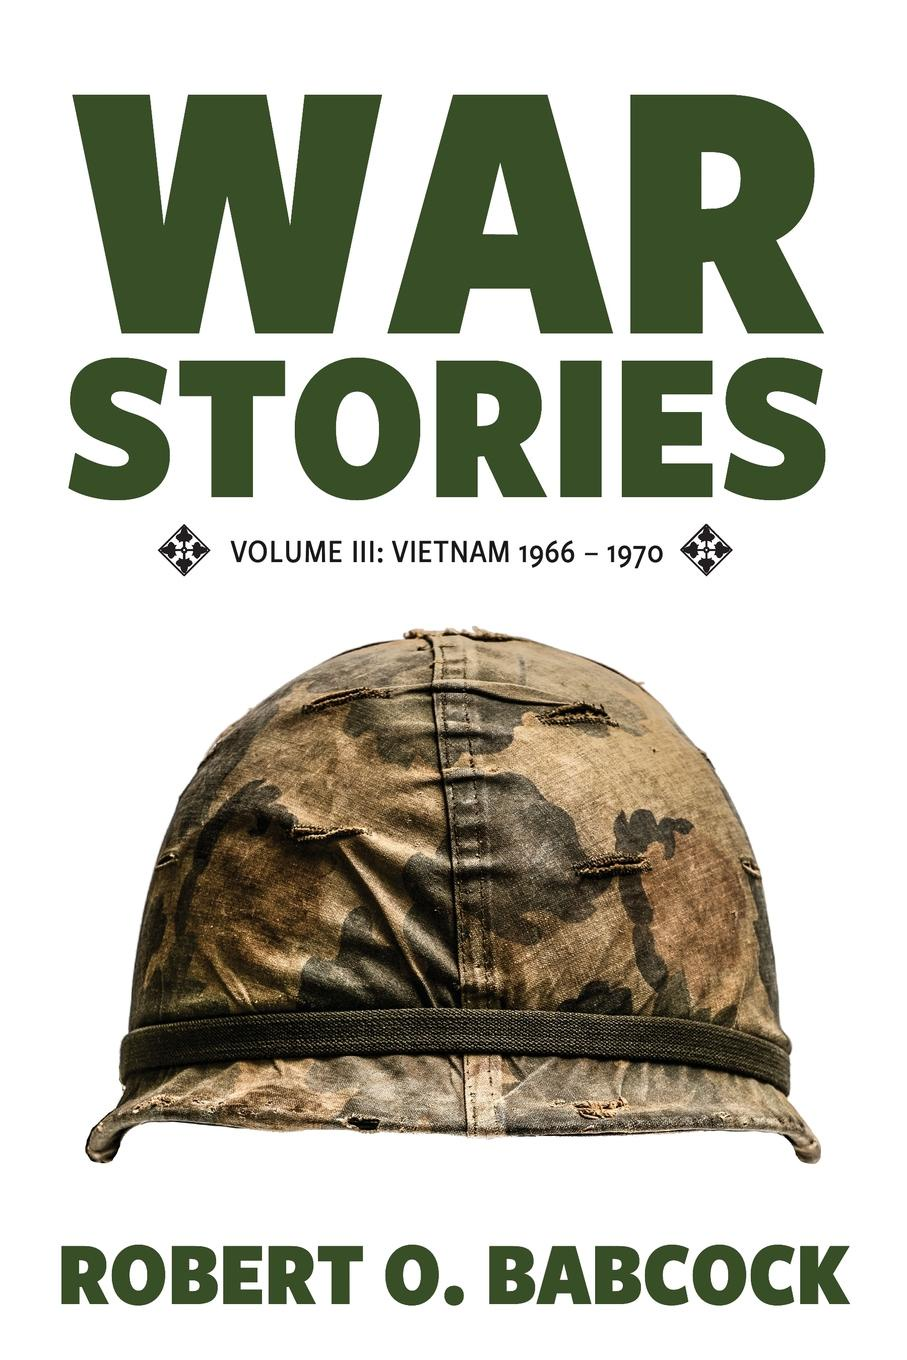 Robert O. Babcock War Stories Volume III. Vietnam 1966 - 1970